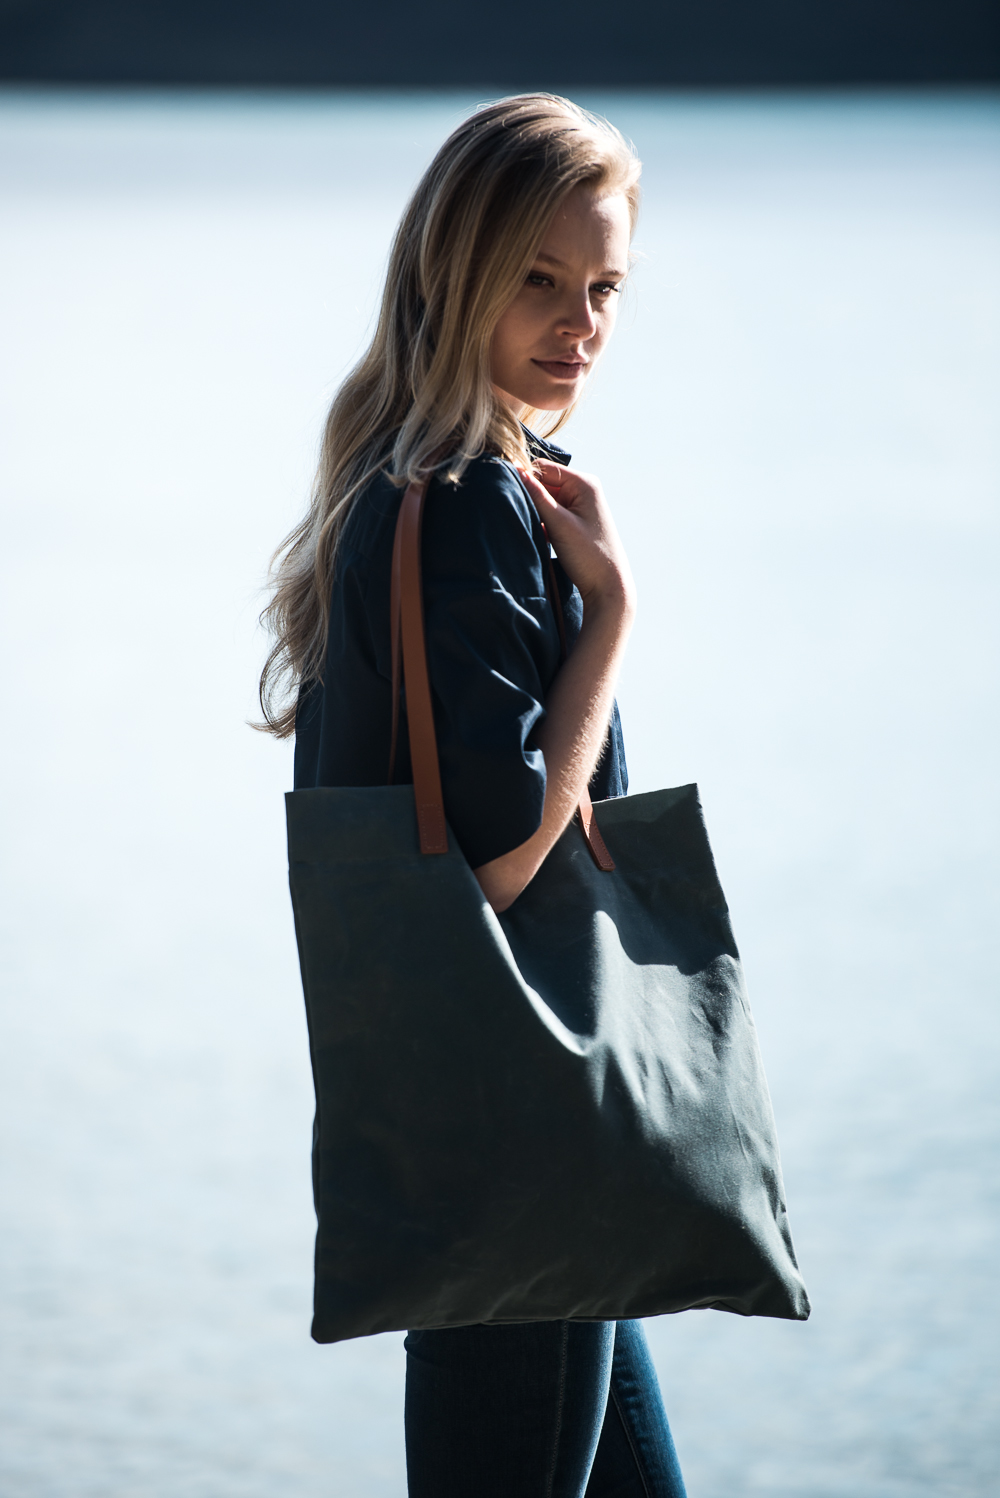 The Wanderer | Tom Lane Lookbook by Olivia Bossert Photography | Oliviablogs.com